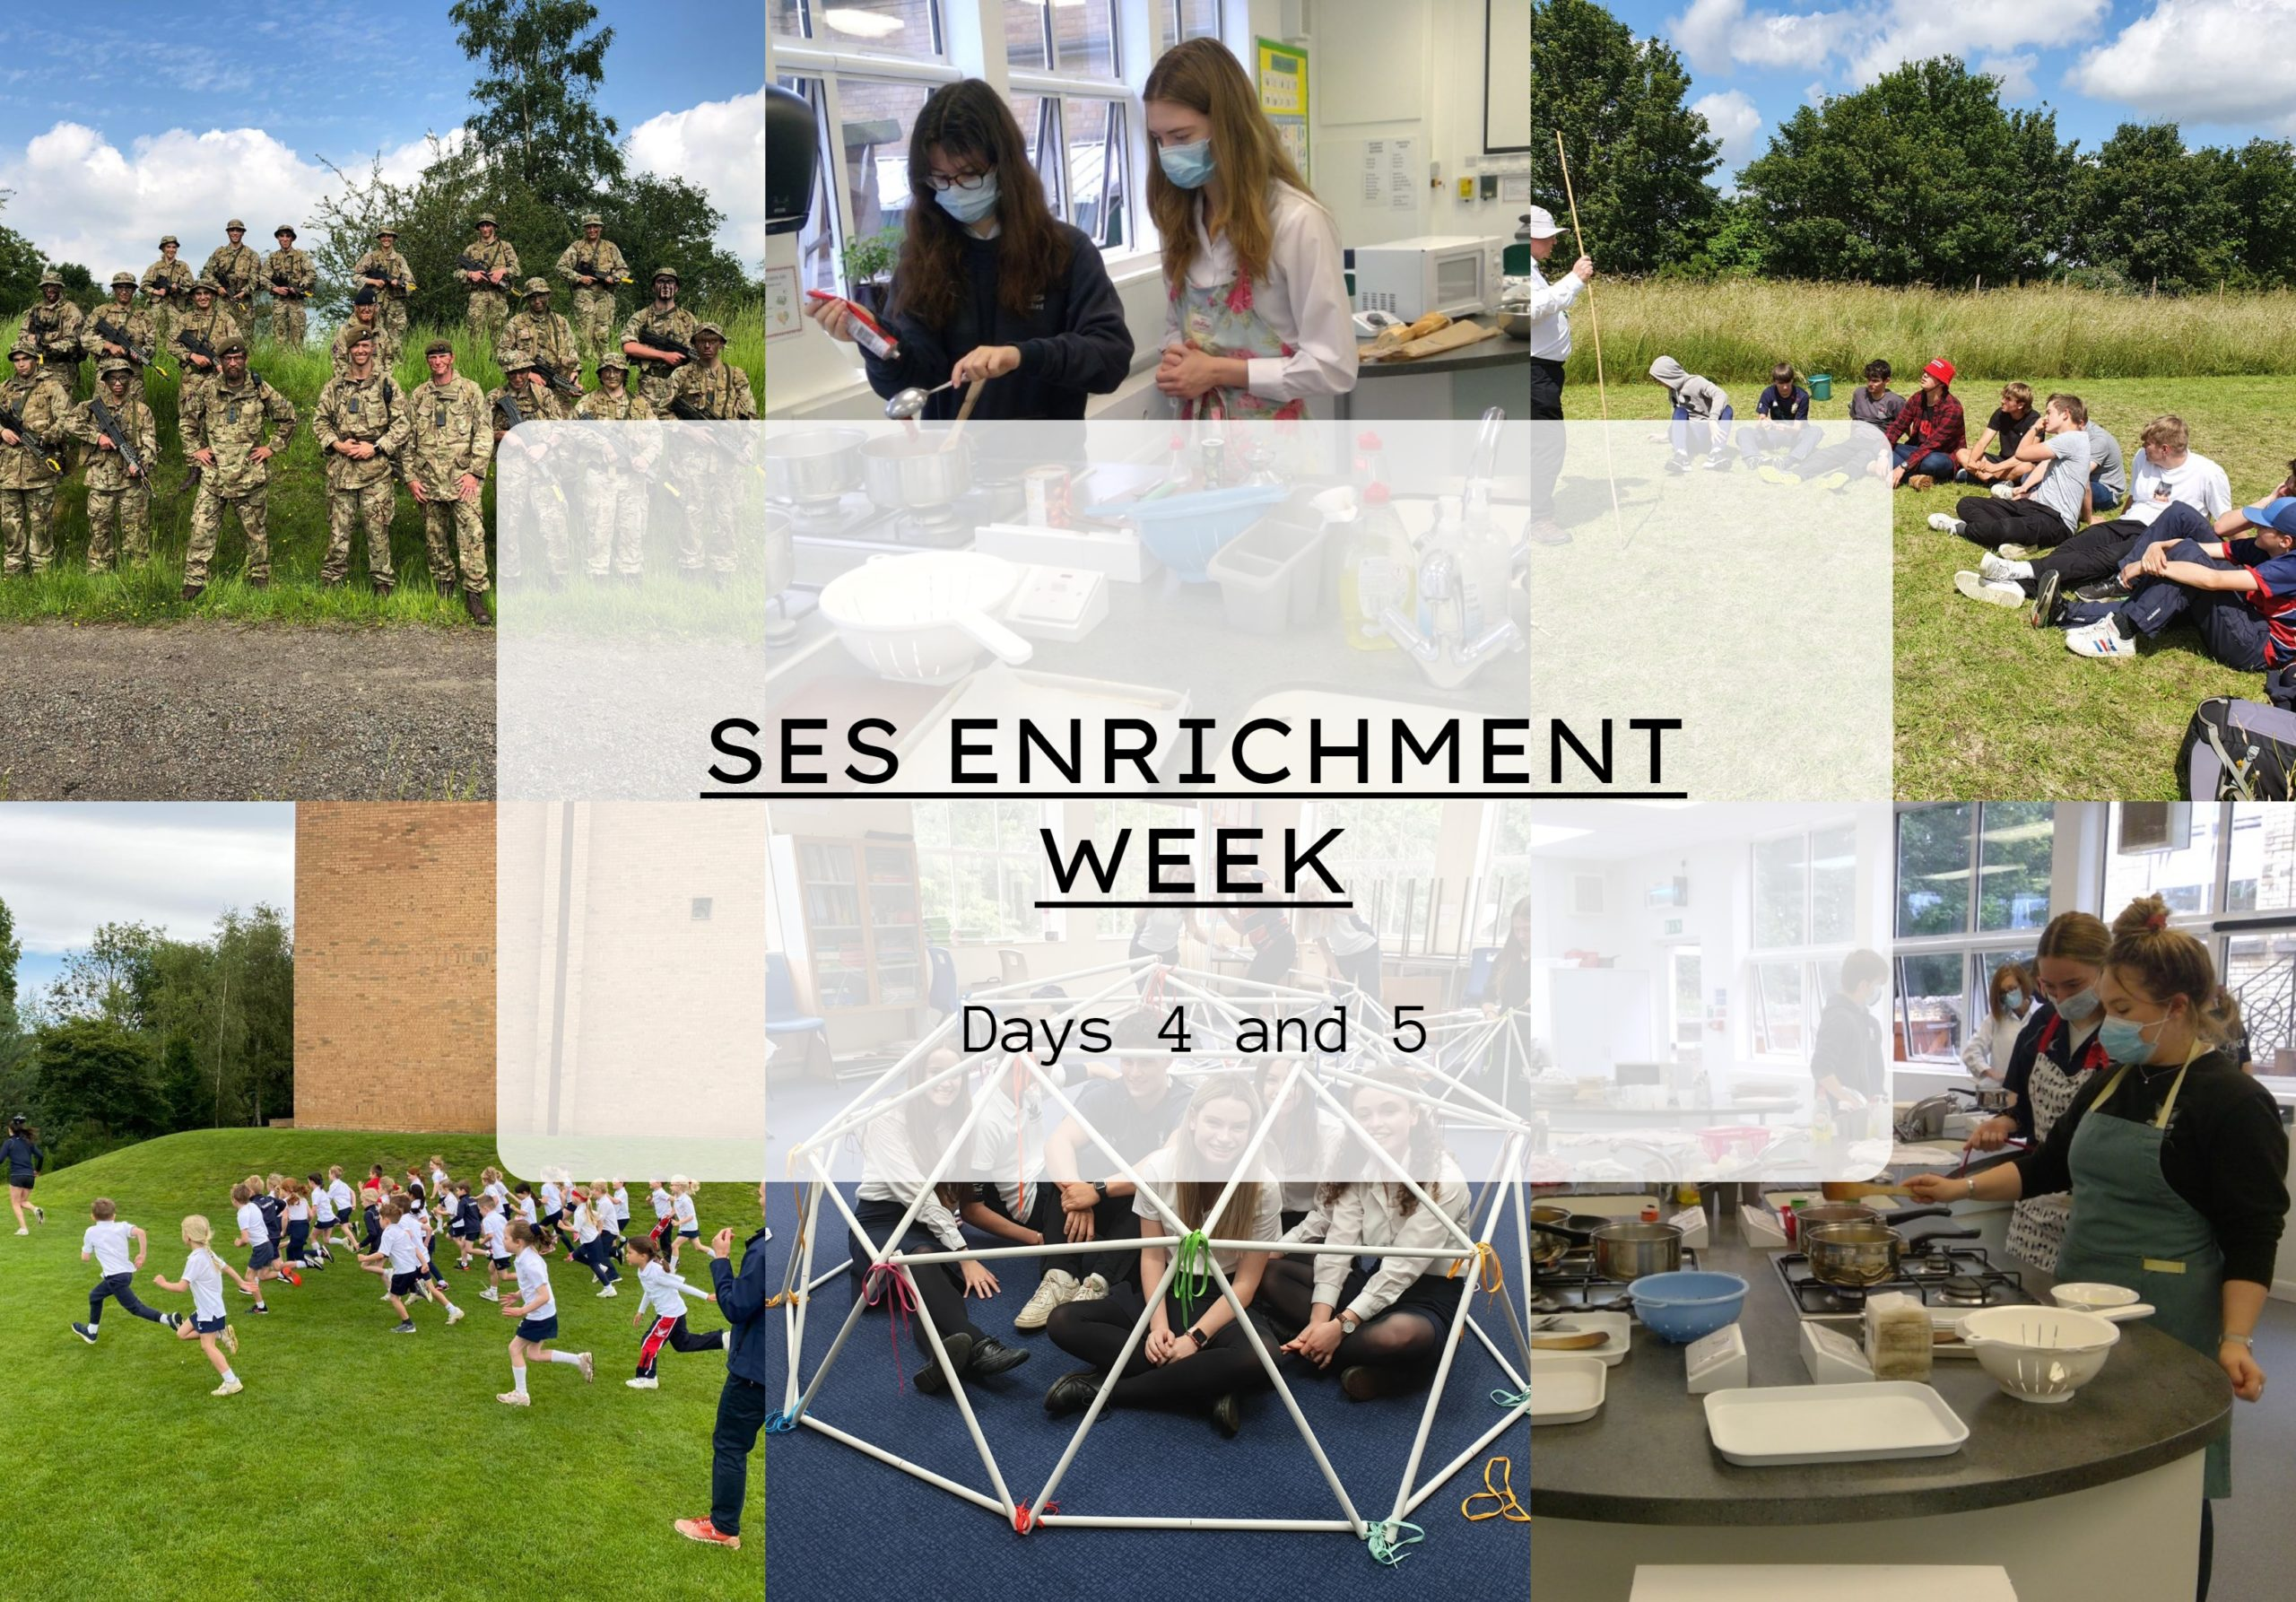 Enrichment Week - Days 4 and 5